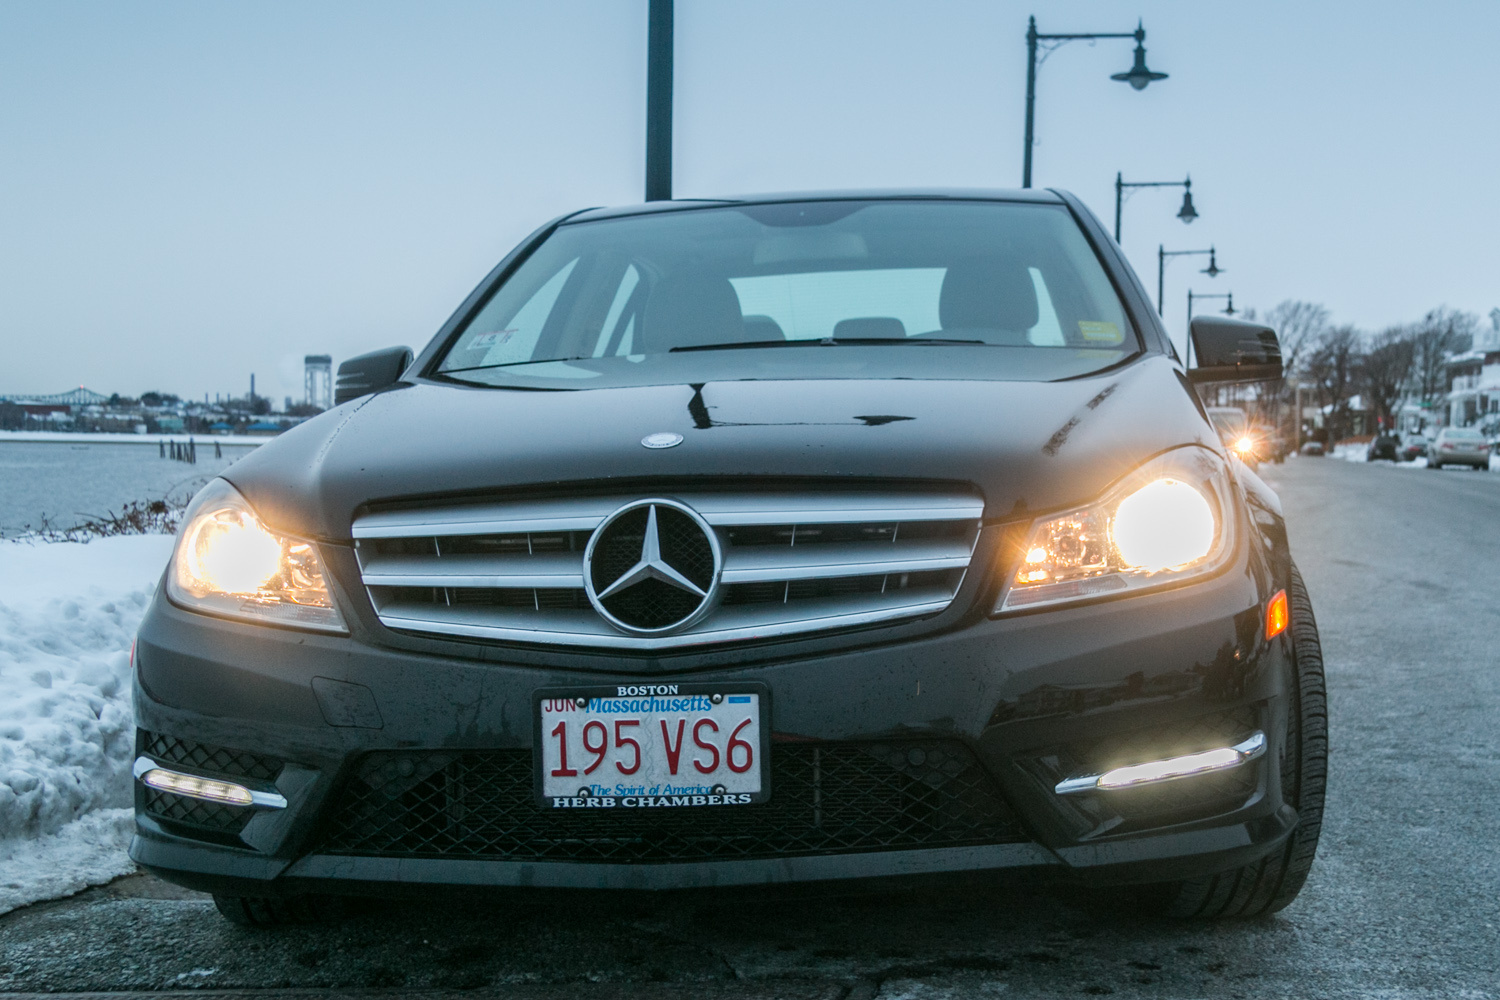 2012 mercedes benz c class pictures cargurus for 2012 mercedes benz c300 4matic sport review